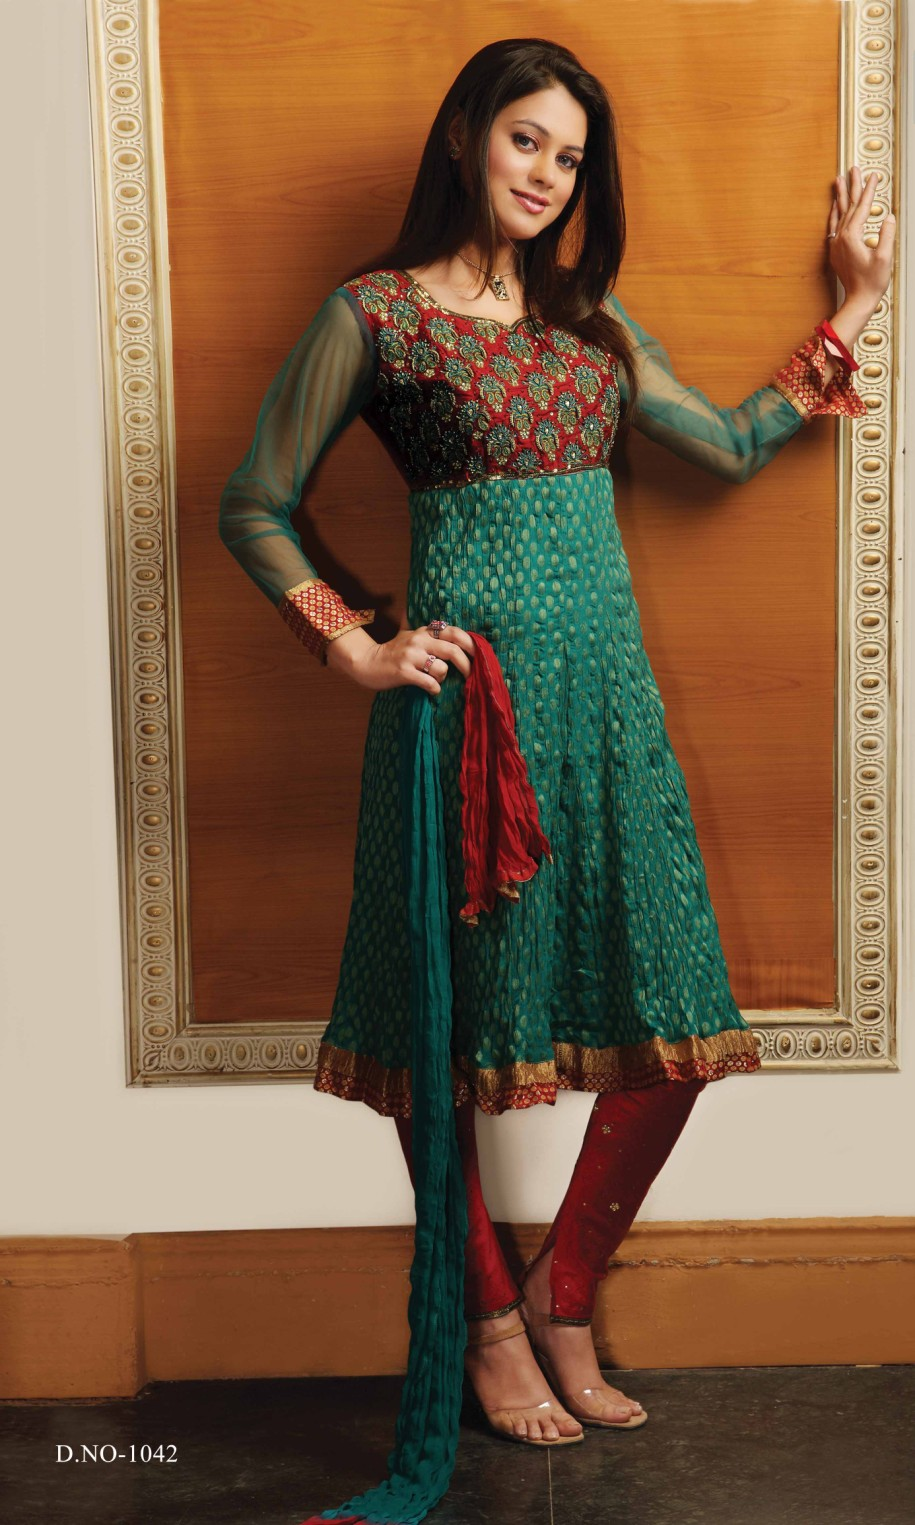 Masakali sleeves anarkali style churidar suit